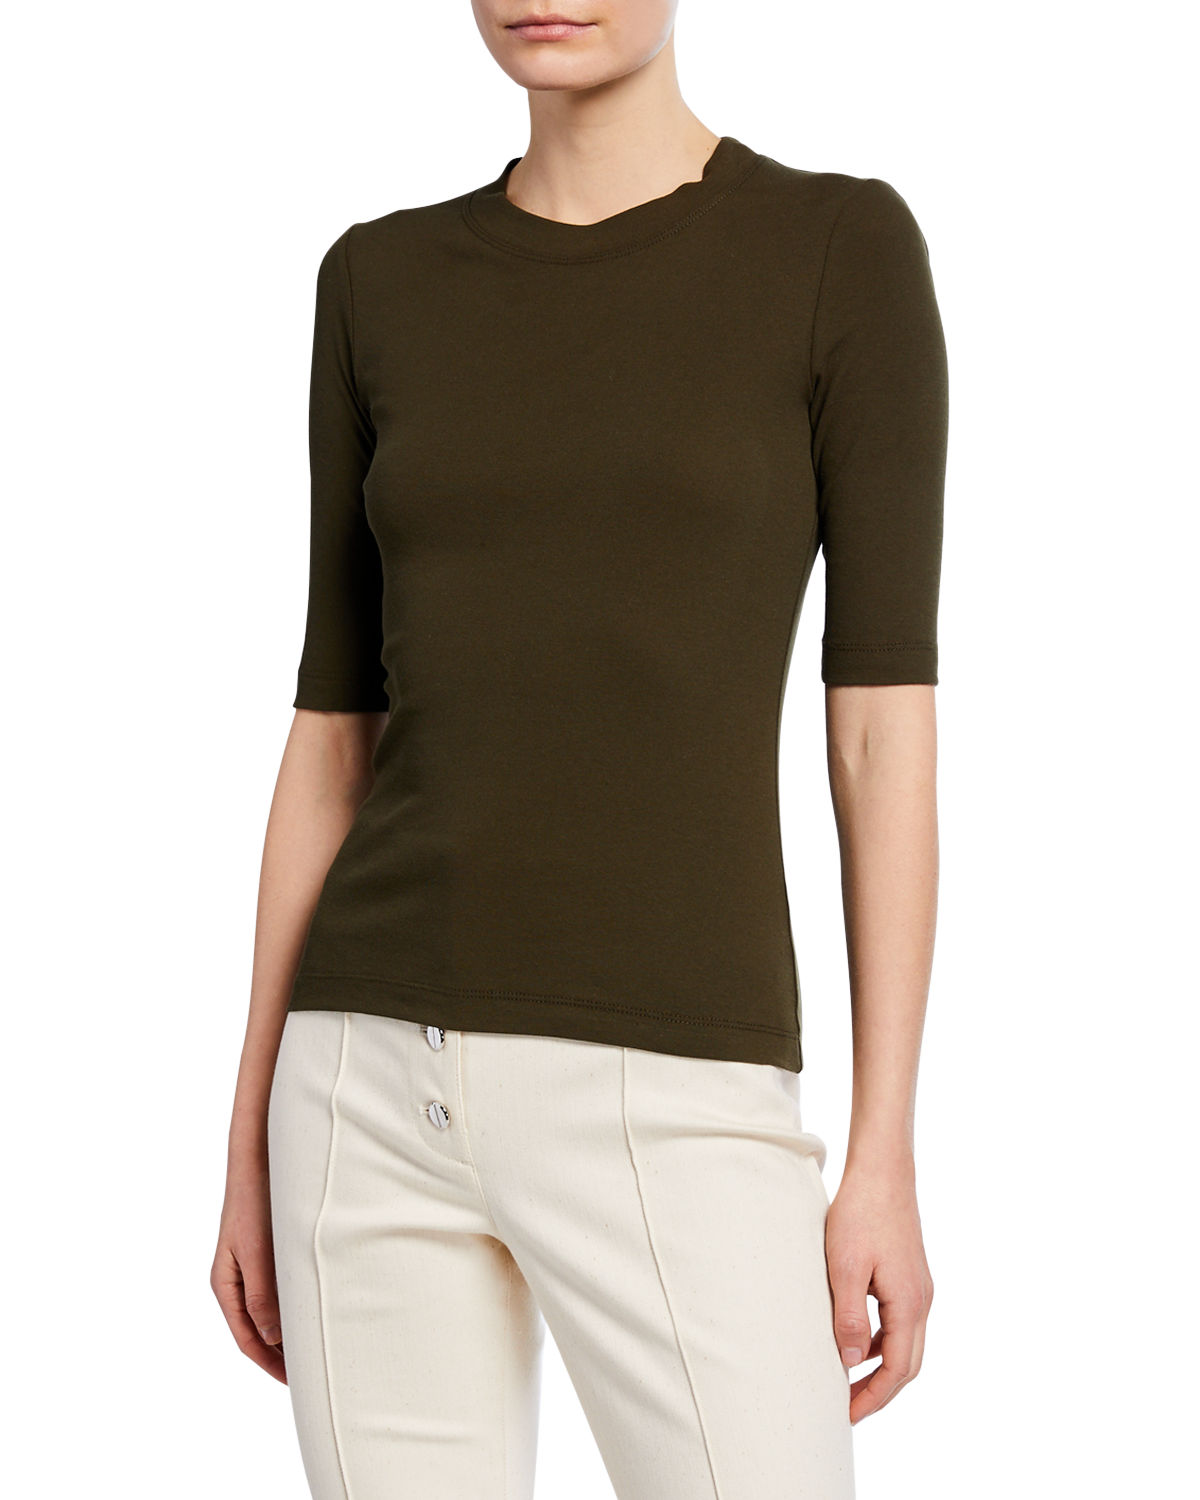 Rosetta Getty T-shirts 1/2-Sleeve Fitted T-Shirt